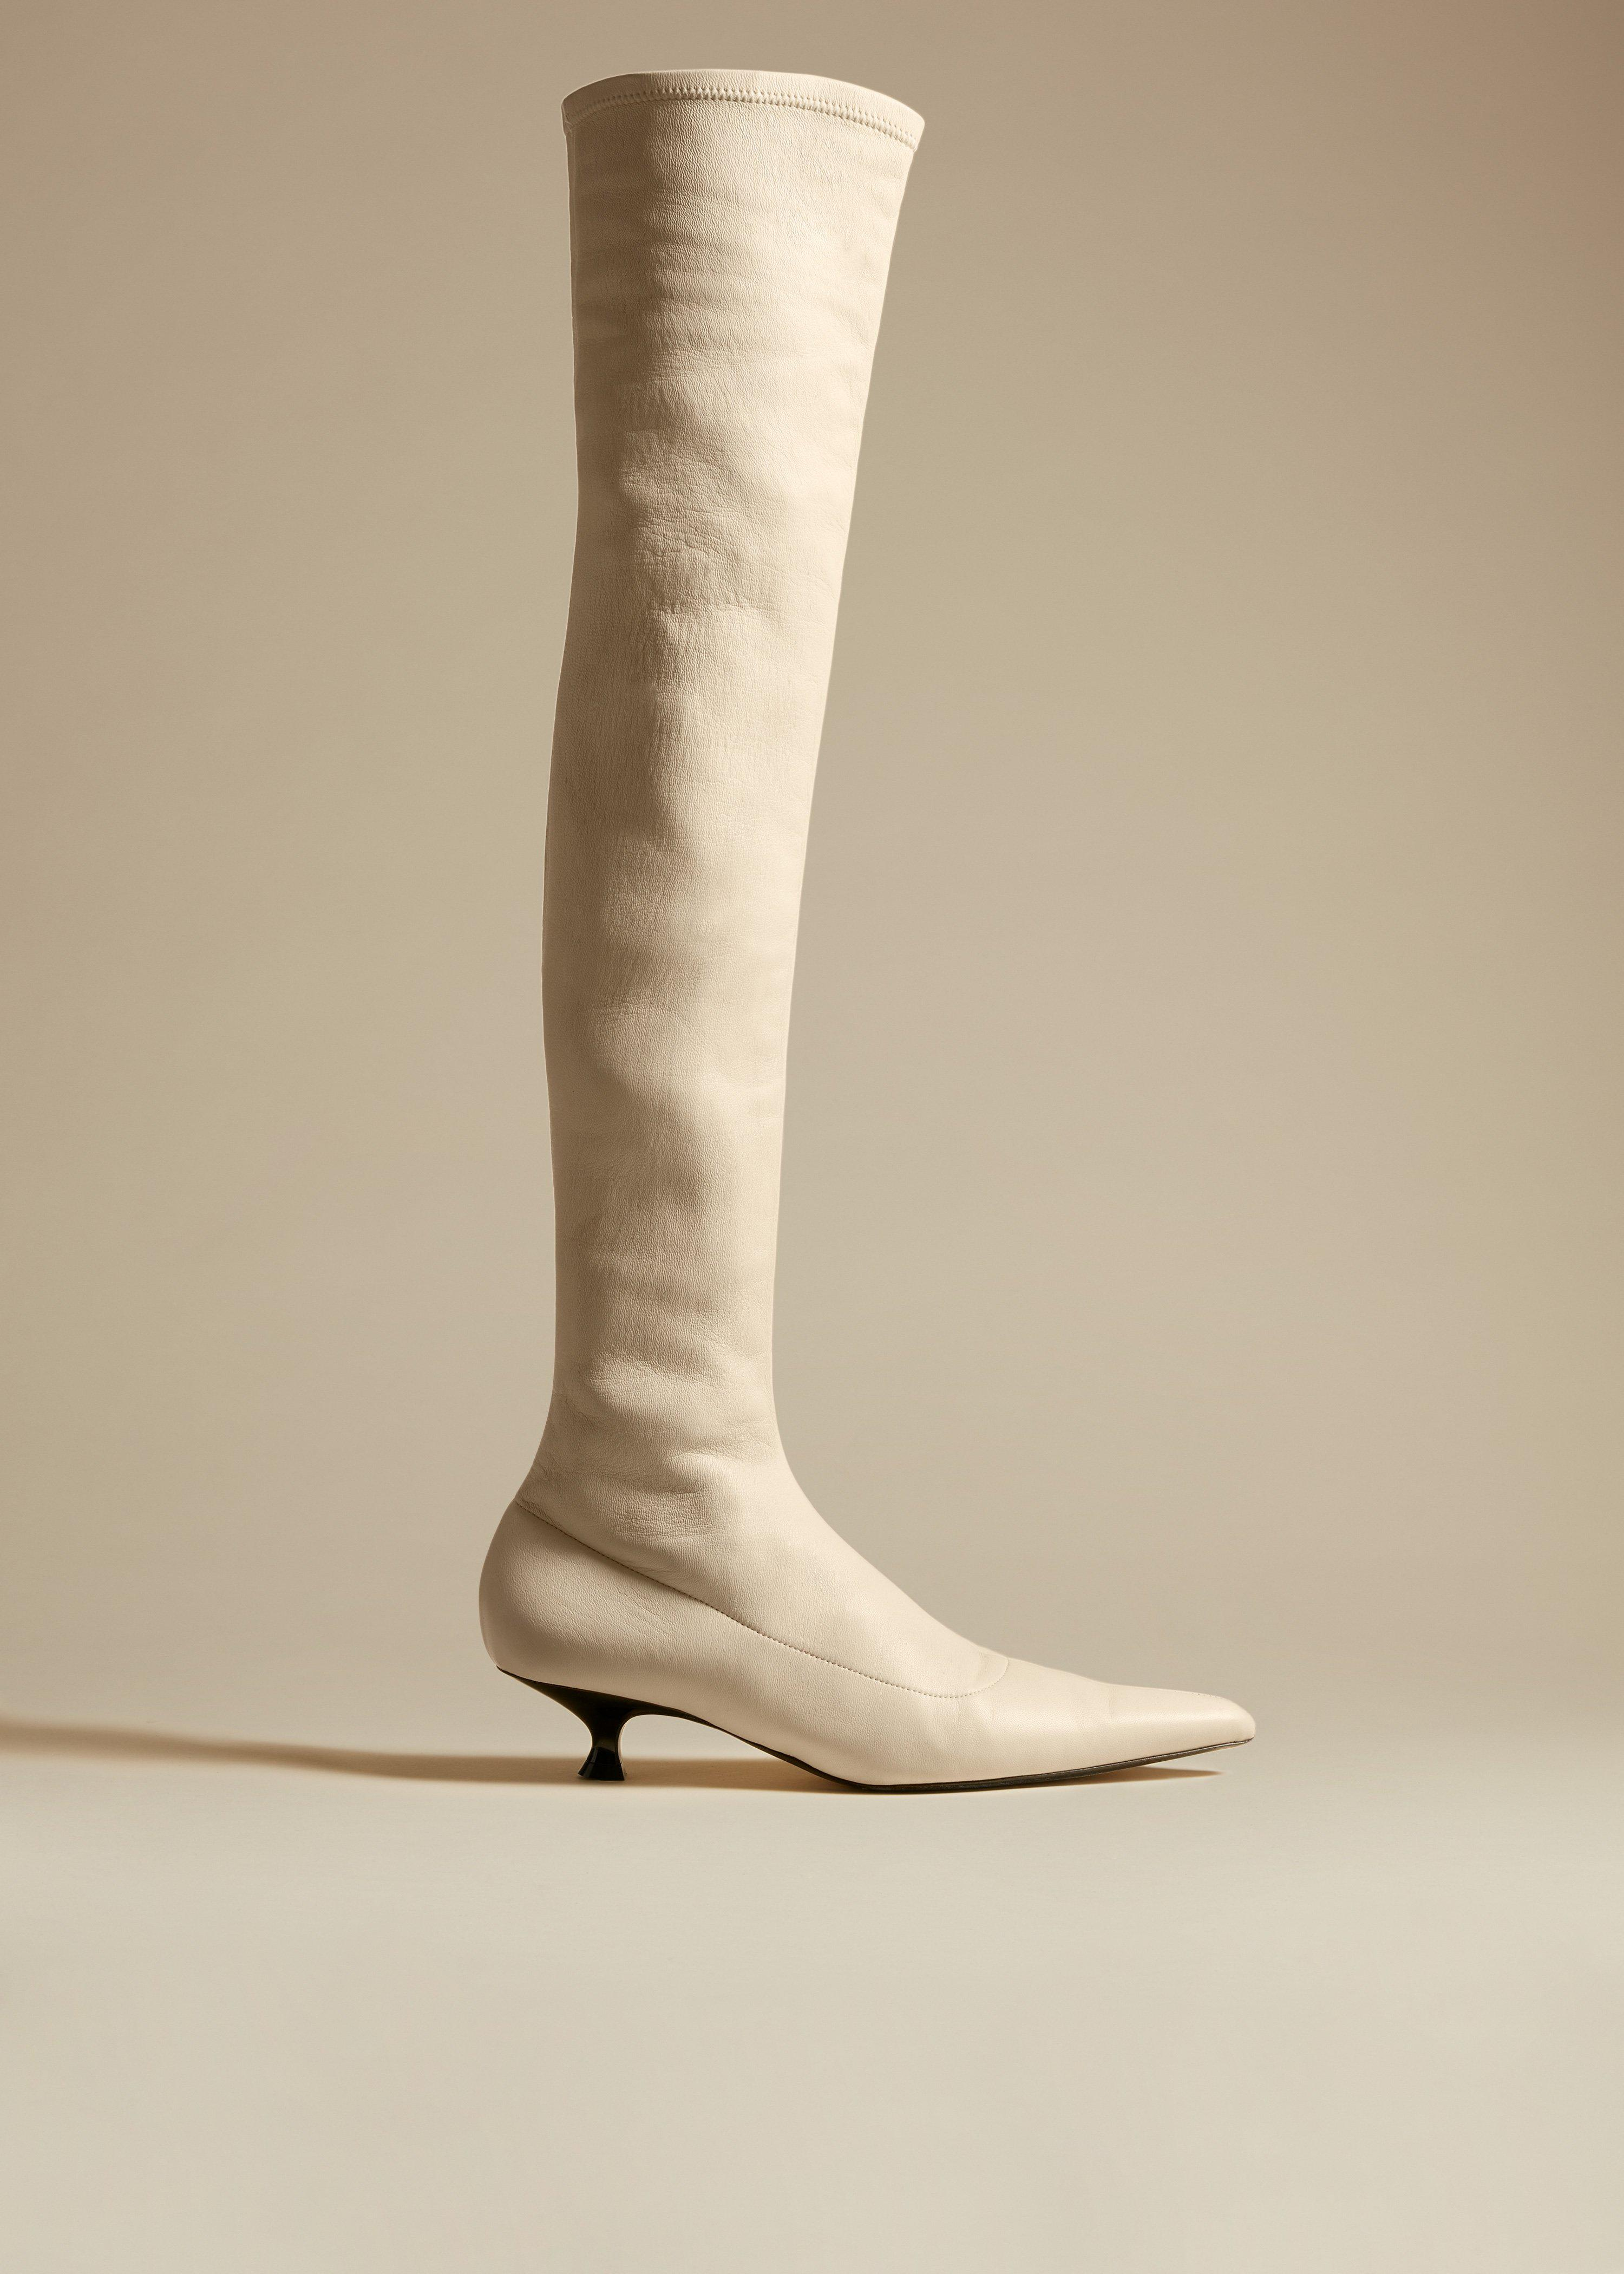 The Volos Over-the-Knee Boot in Cream Leather